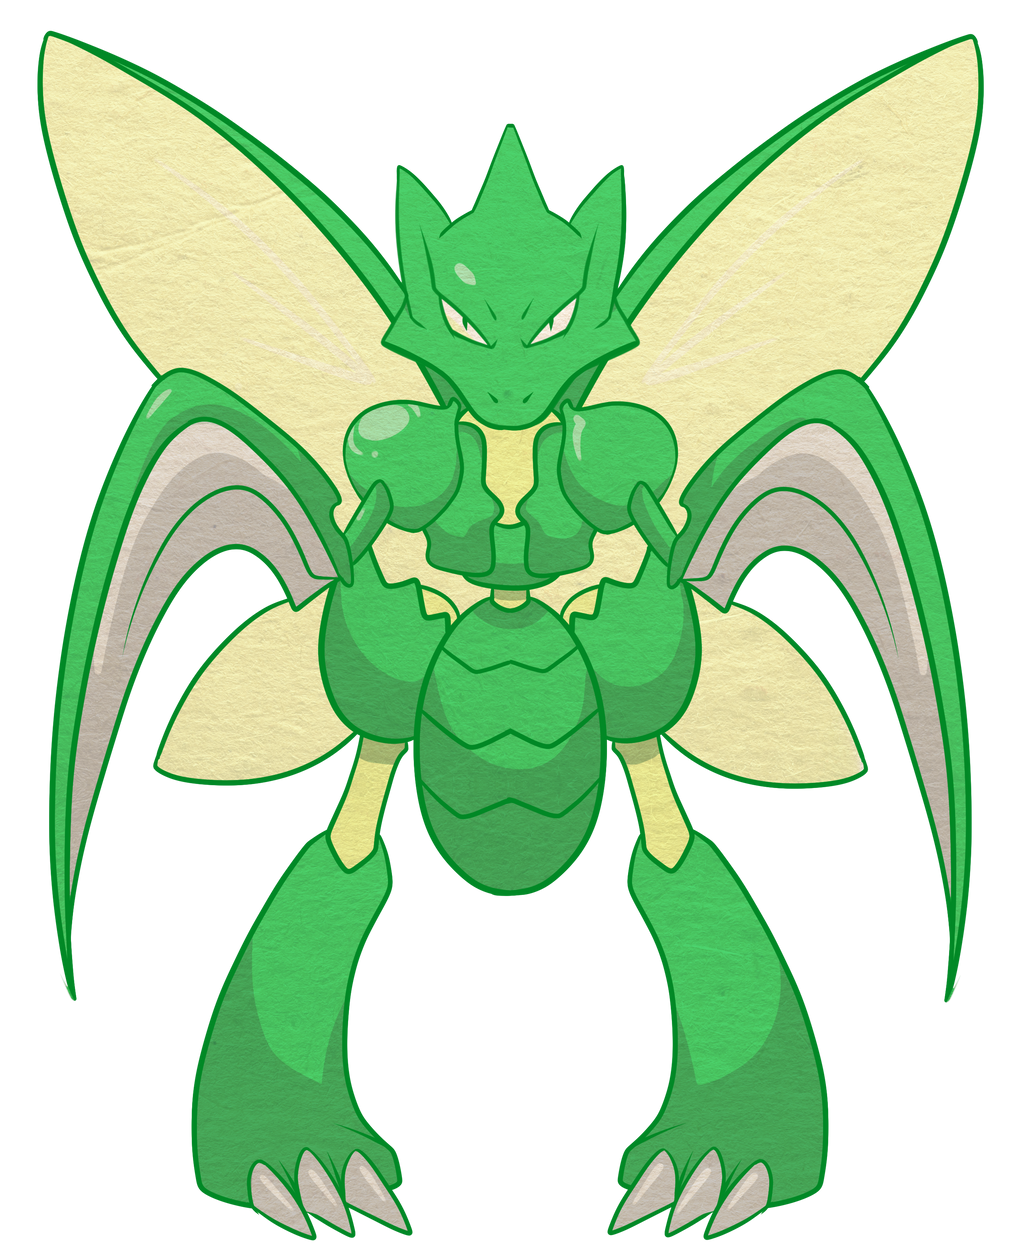 scyther 2 pokemon - photo #23